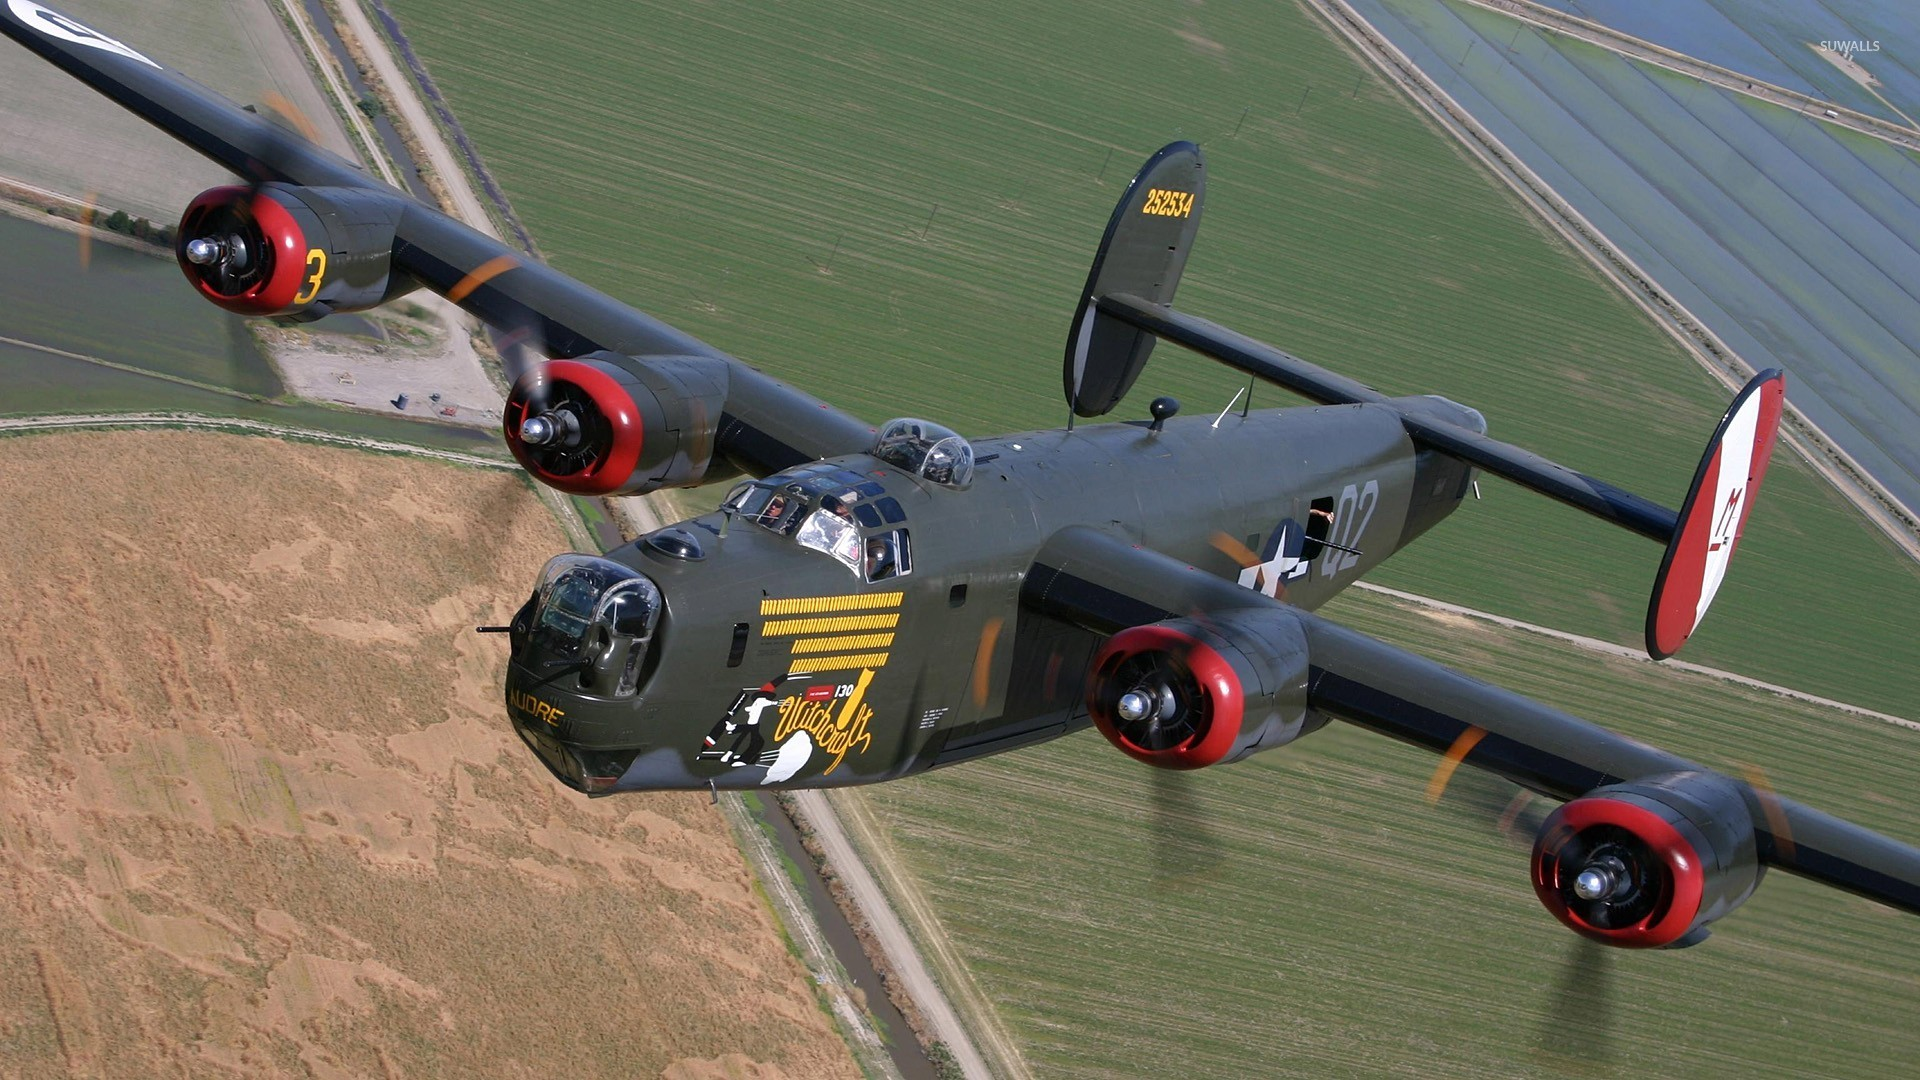 1920x1080 - Consolidated B-24 Liberator Wallpapers 1